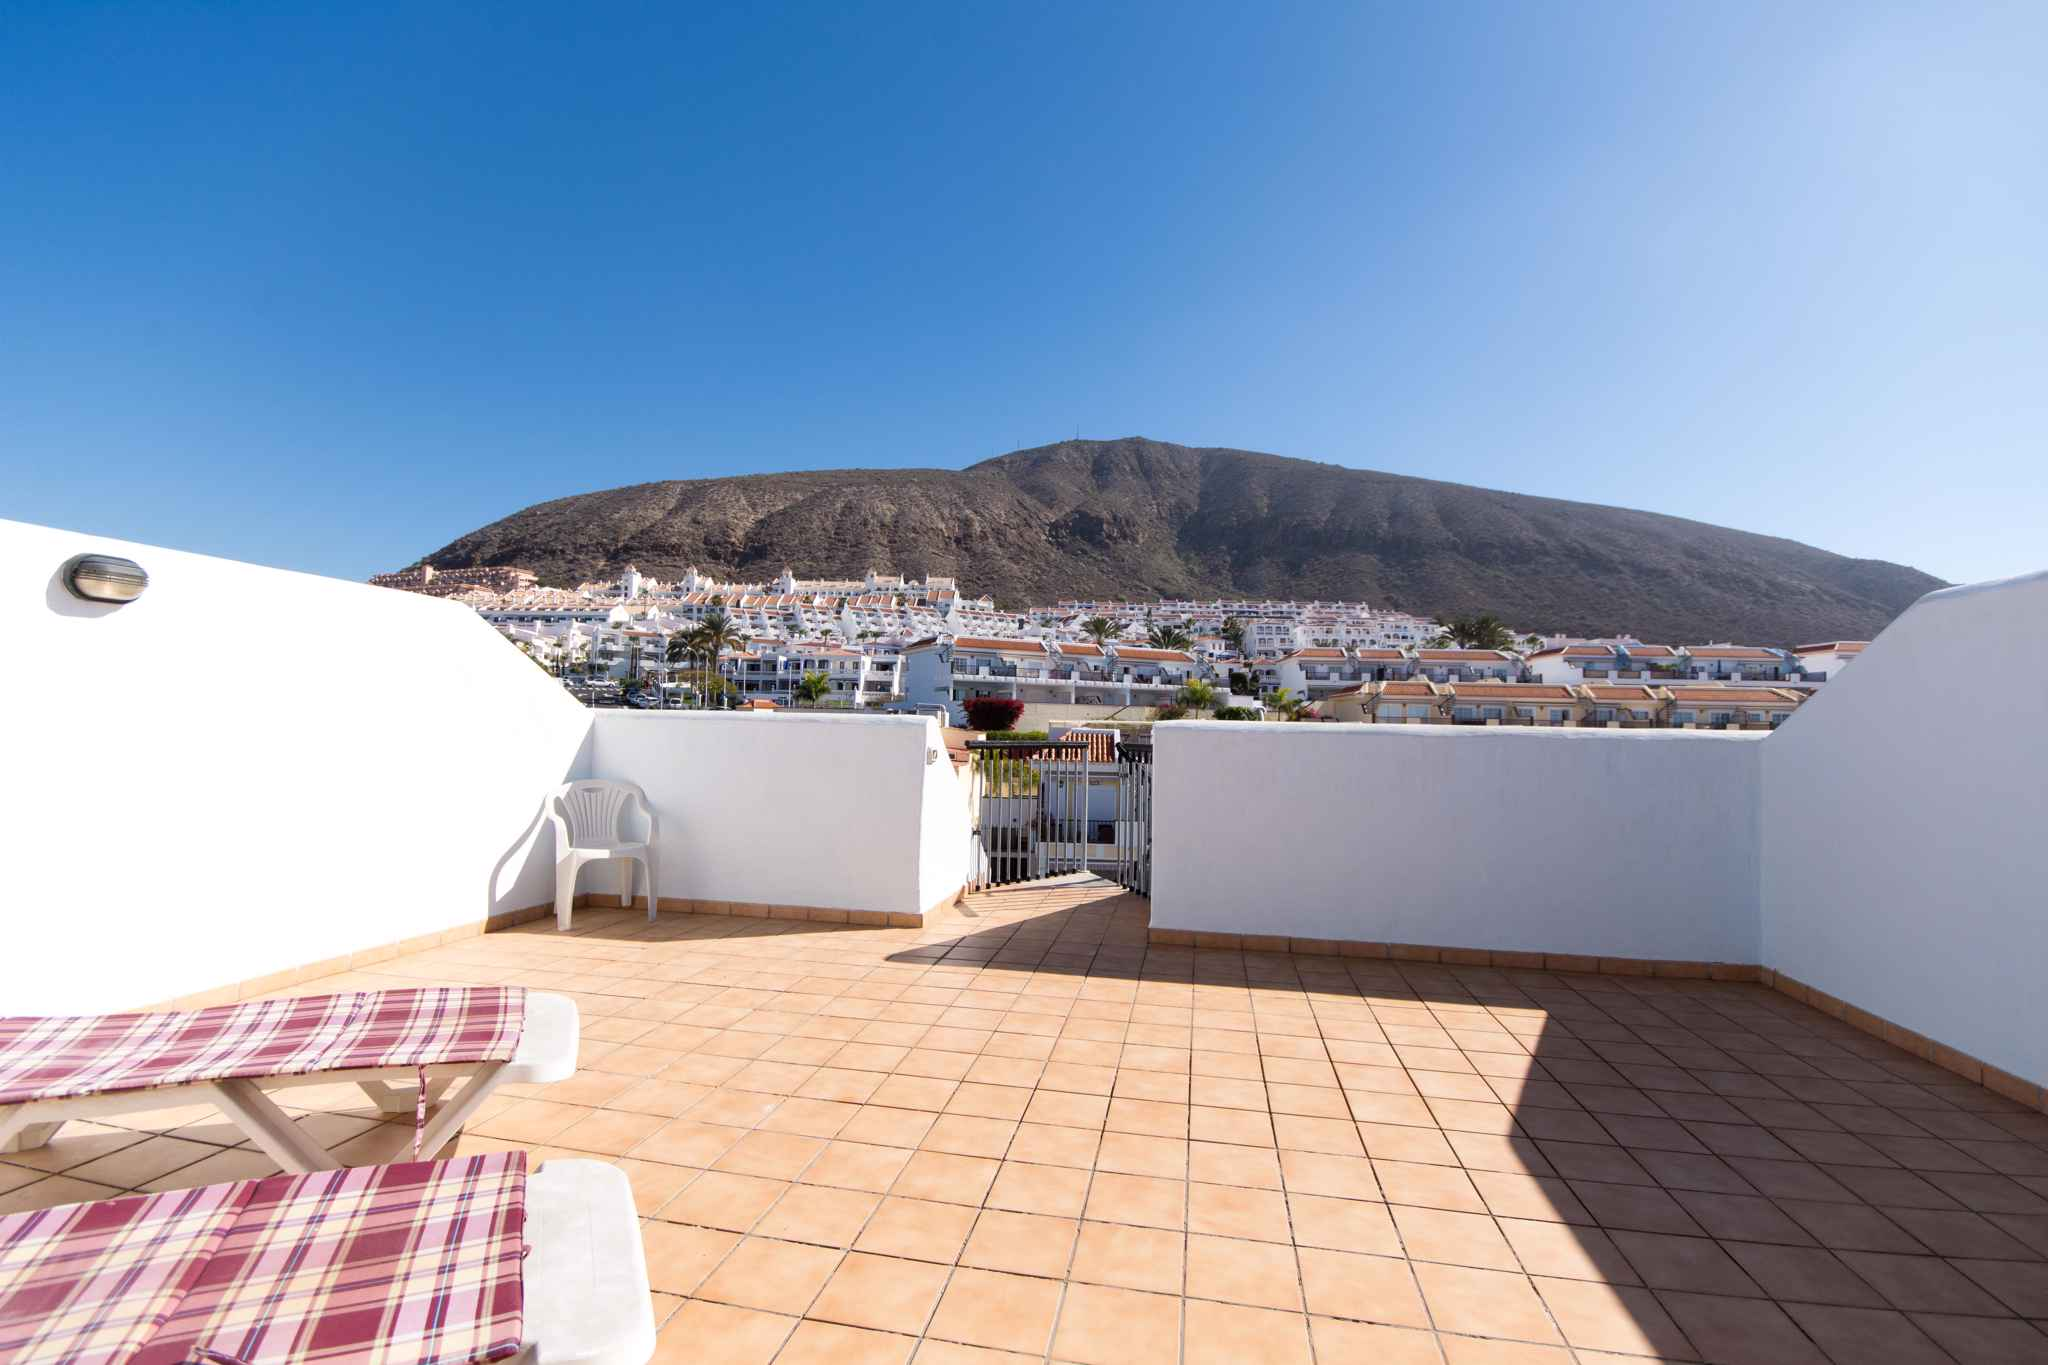 Holiday apartment mit Pool in Ferienanlage (2382979), Los Cristianos, Tenerife, Canary Islands, Spain, picture 5